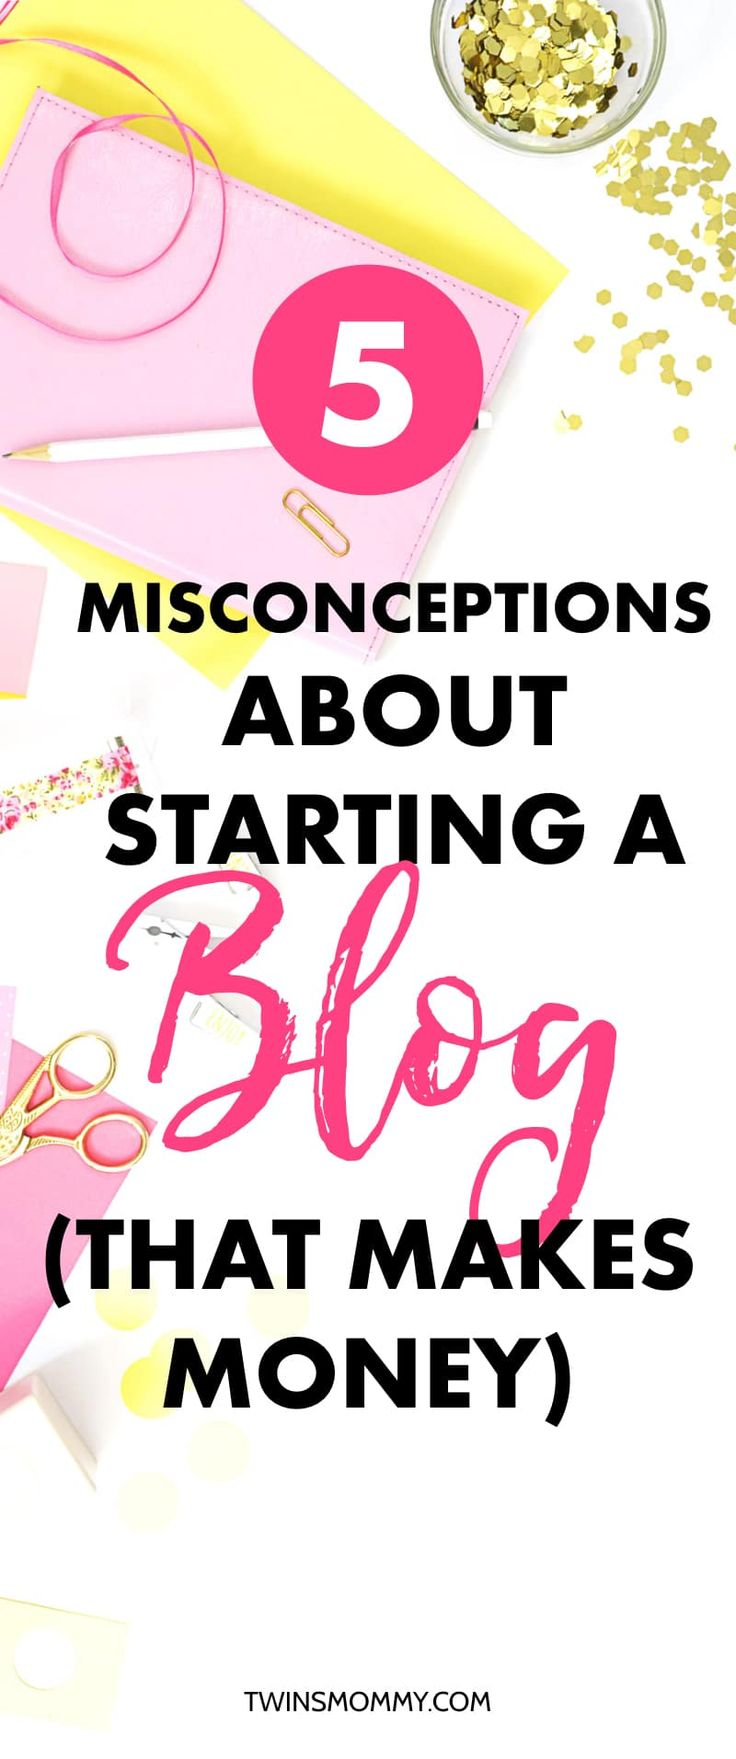 Interested in starting a blog? Can you make money blogging? Do you need a blog niche for blogging ideas? So much to learn when you're a new mom blogger. But, maybe you're not sure based on some misconceptions about starting a blog. Let me uncover those and help you make money as a blogger! | #moneytips #bloggingtips